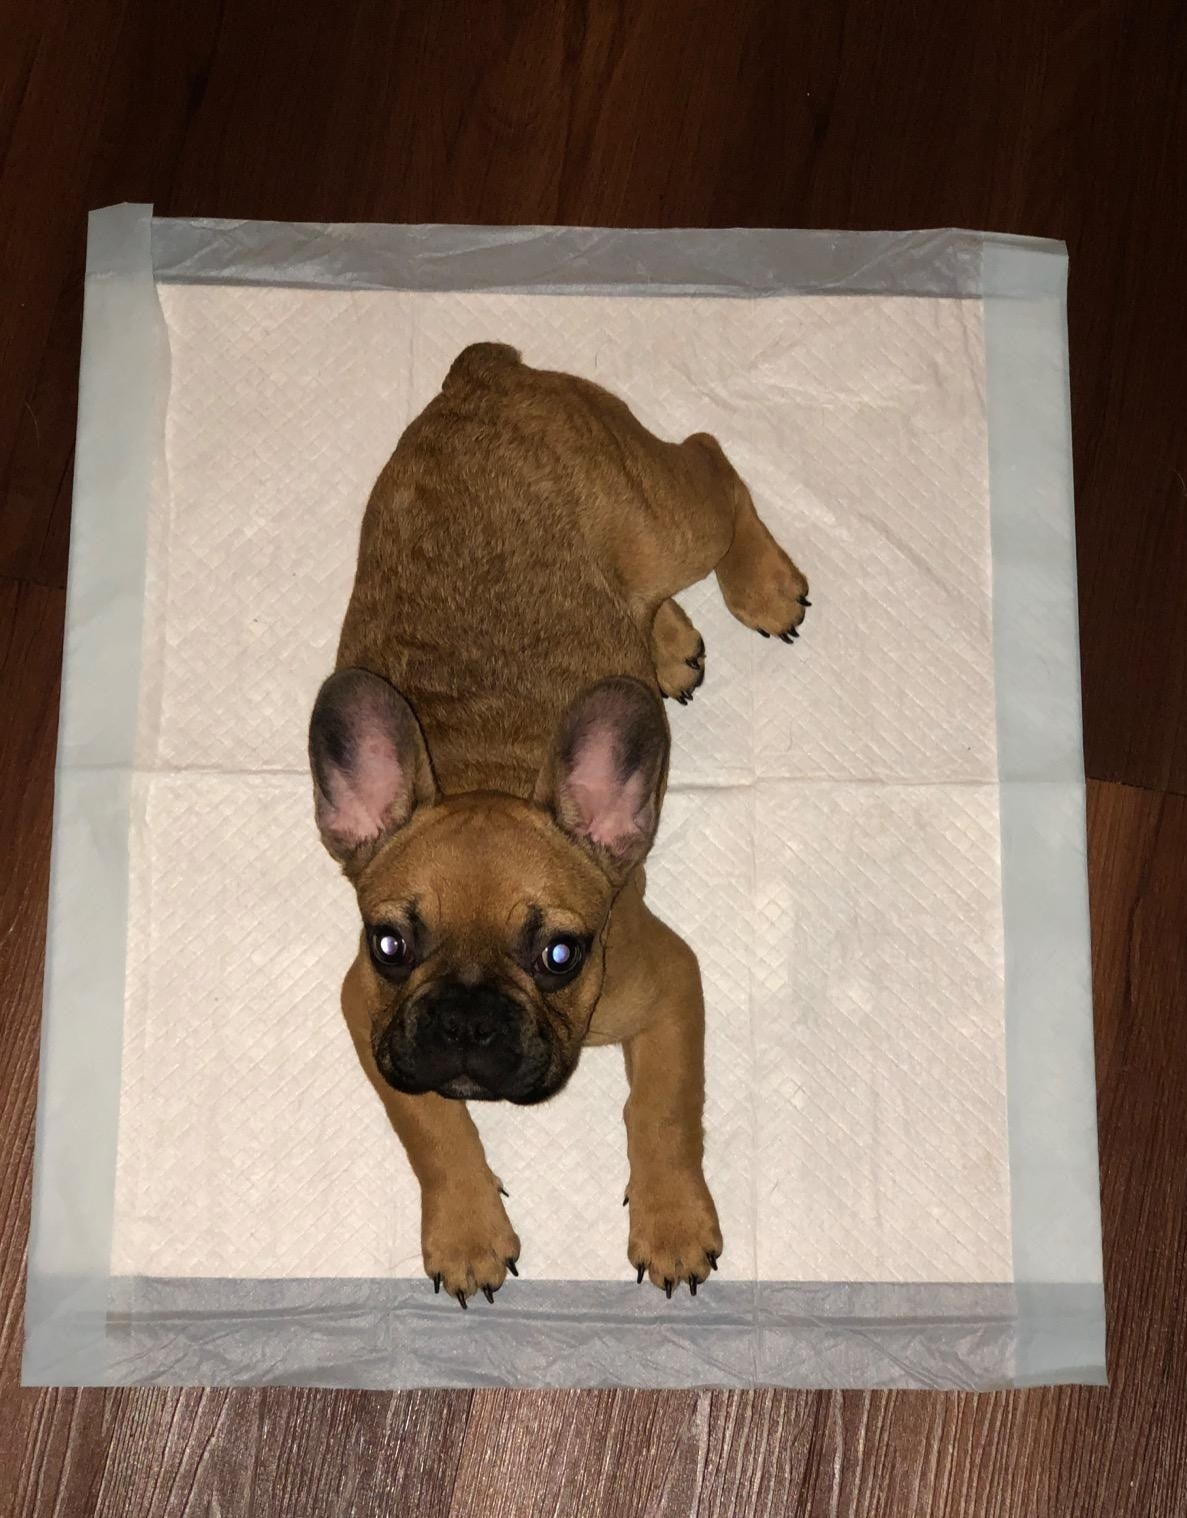 a Frenchie puppy on one of the pads